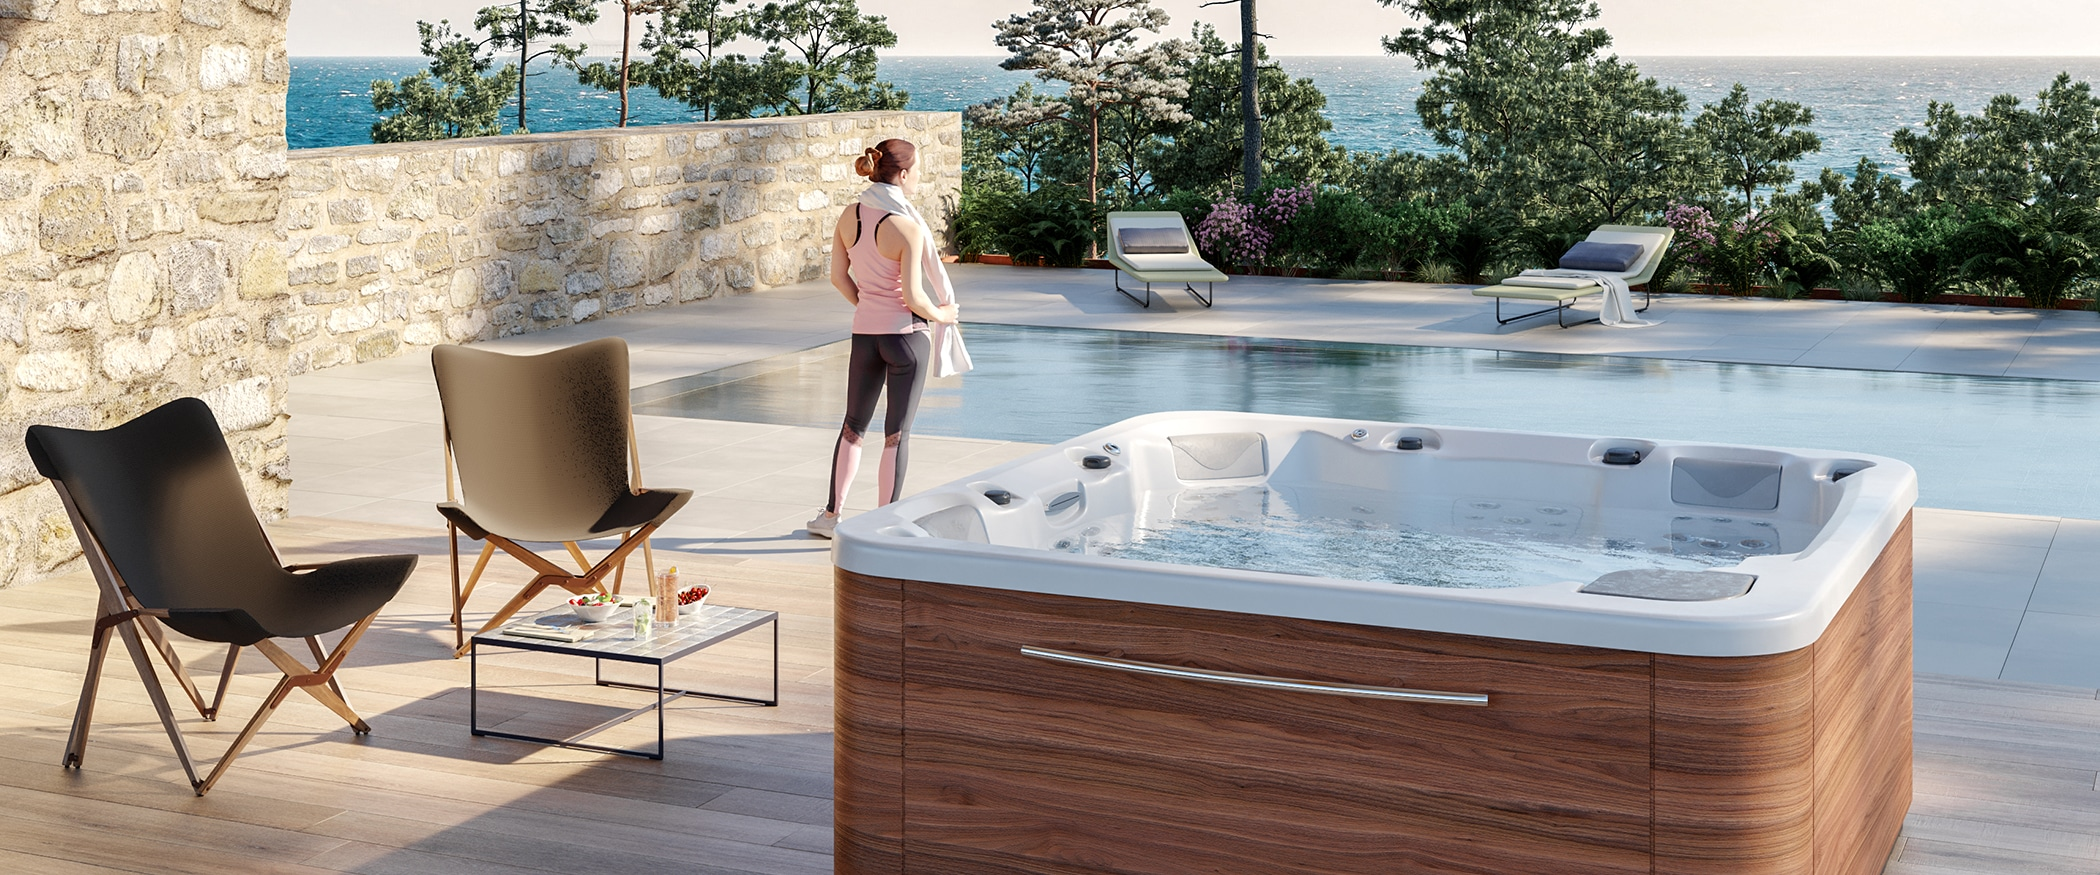 Spa jacuzzi Essence 5 plazas Aquavia Spa